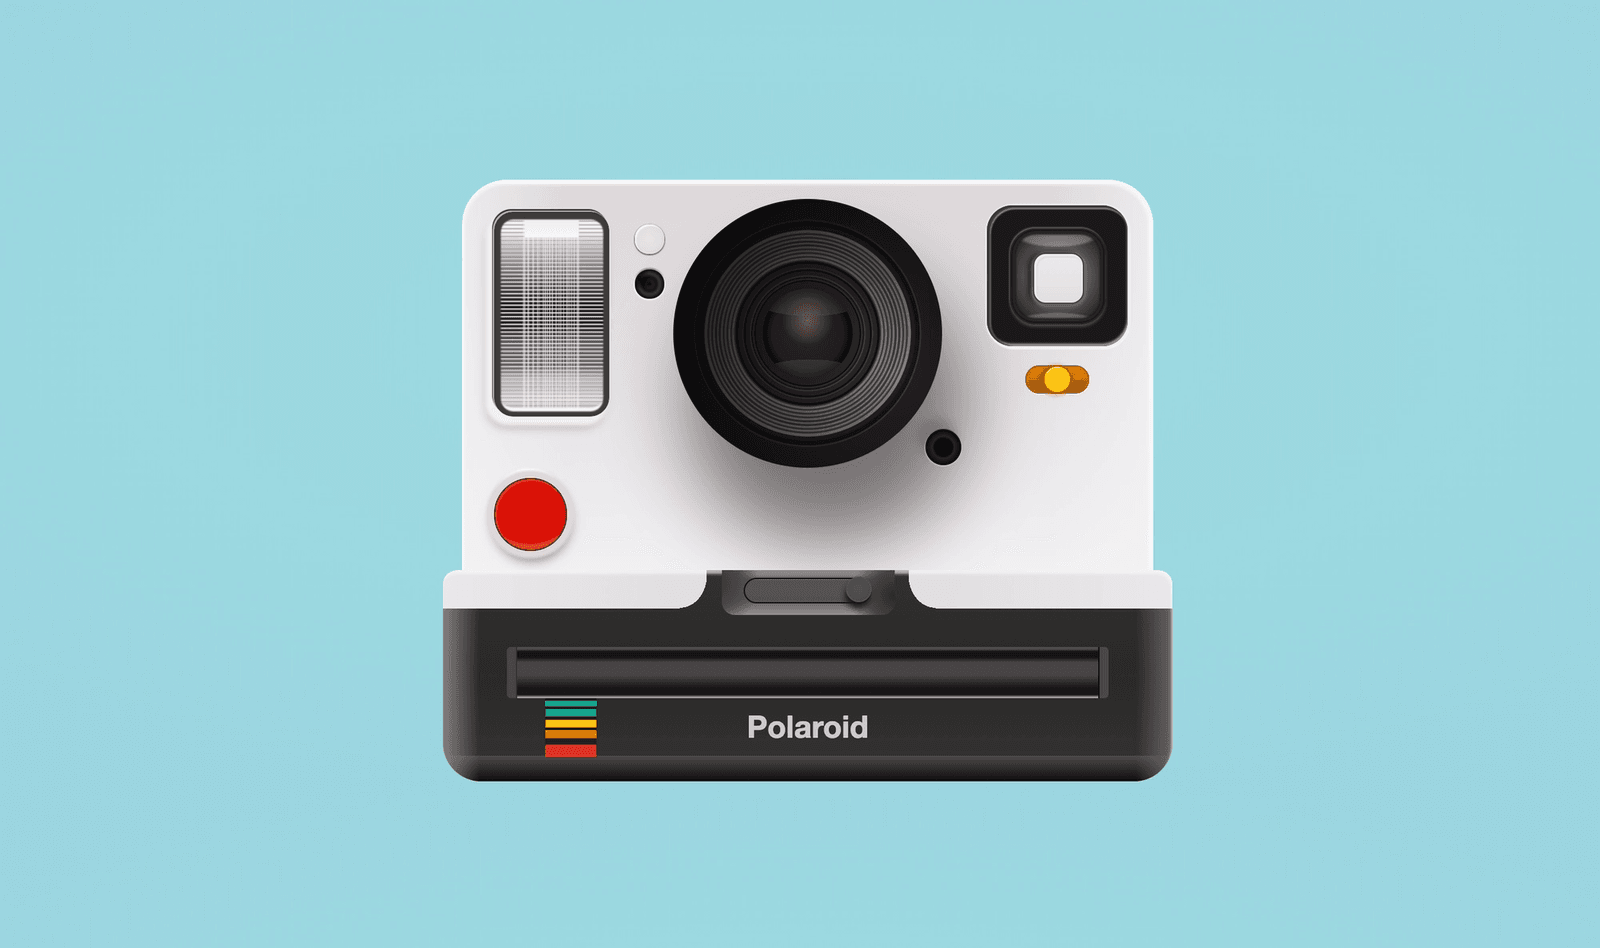 End result of a black and white polaroid camera (red shutter and yellow flash switch) on a light blue background